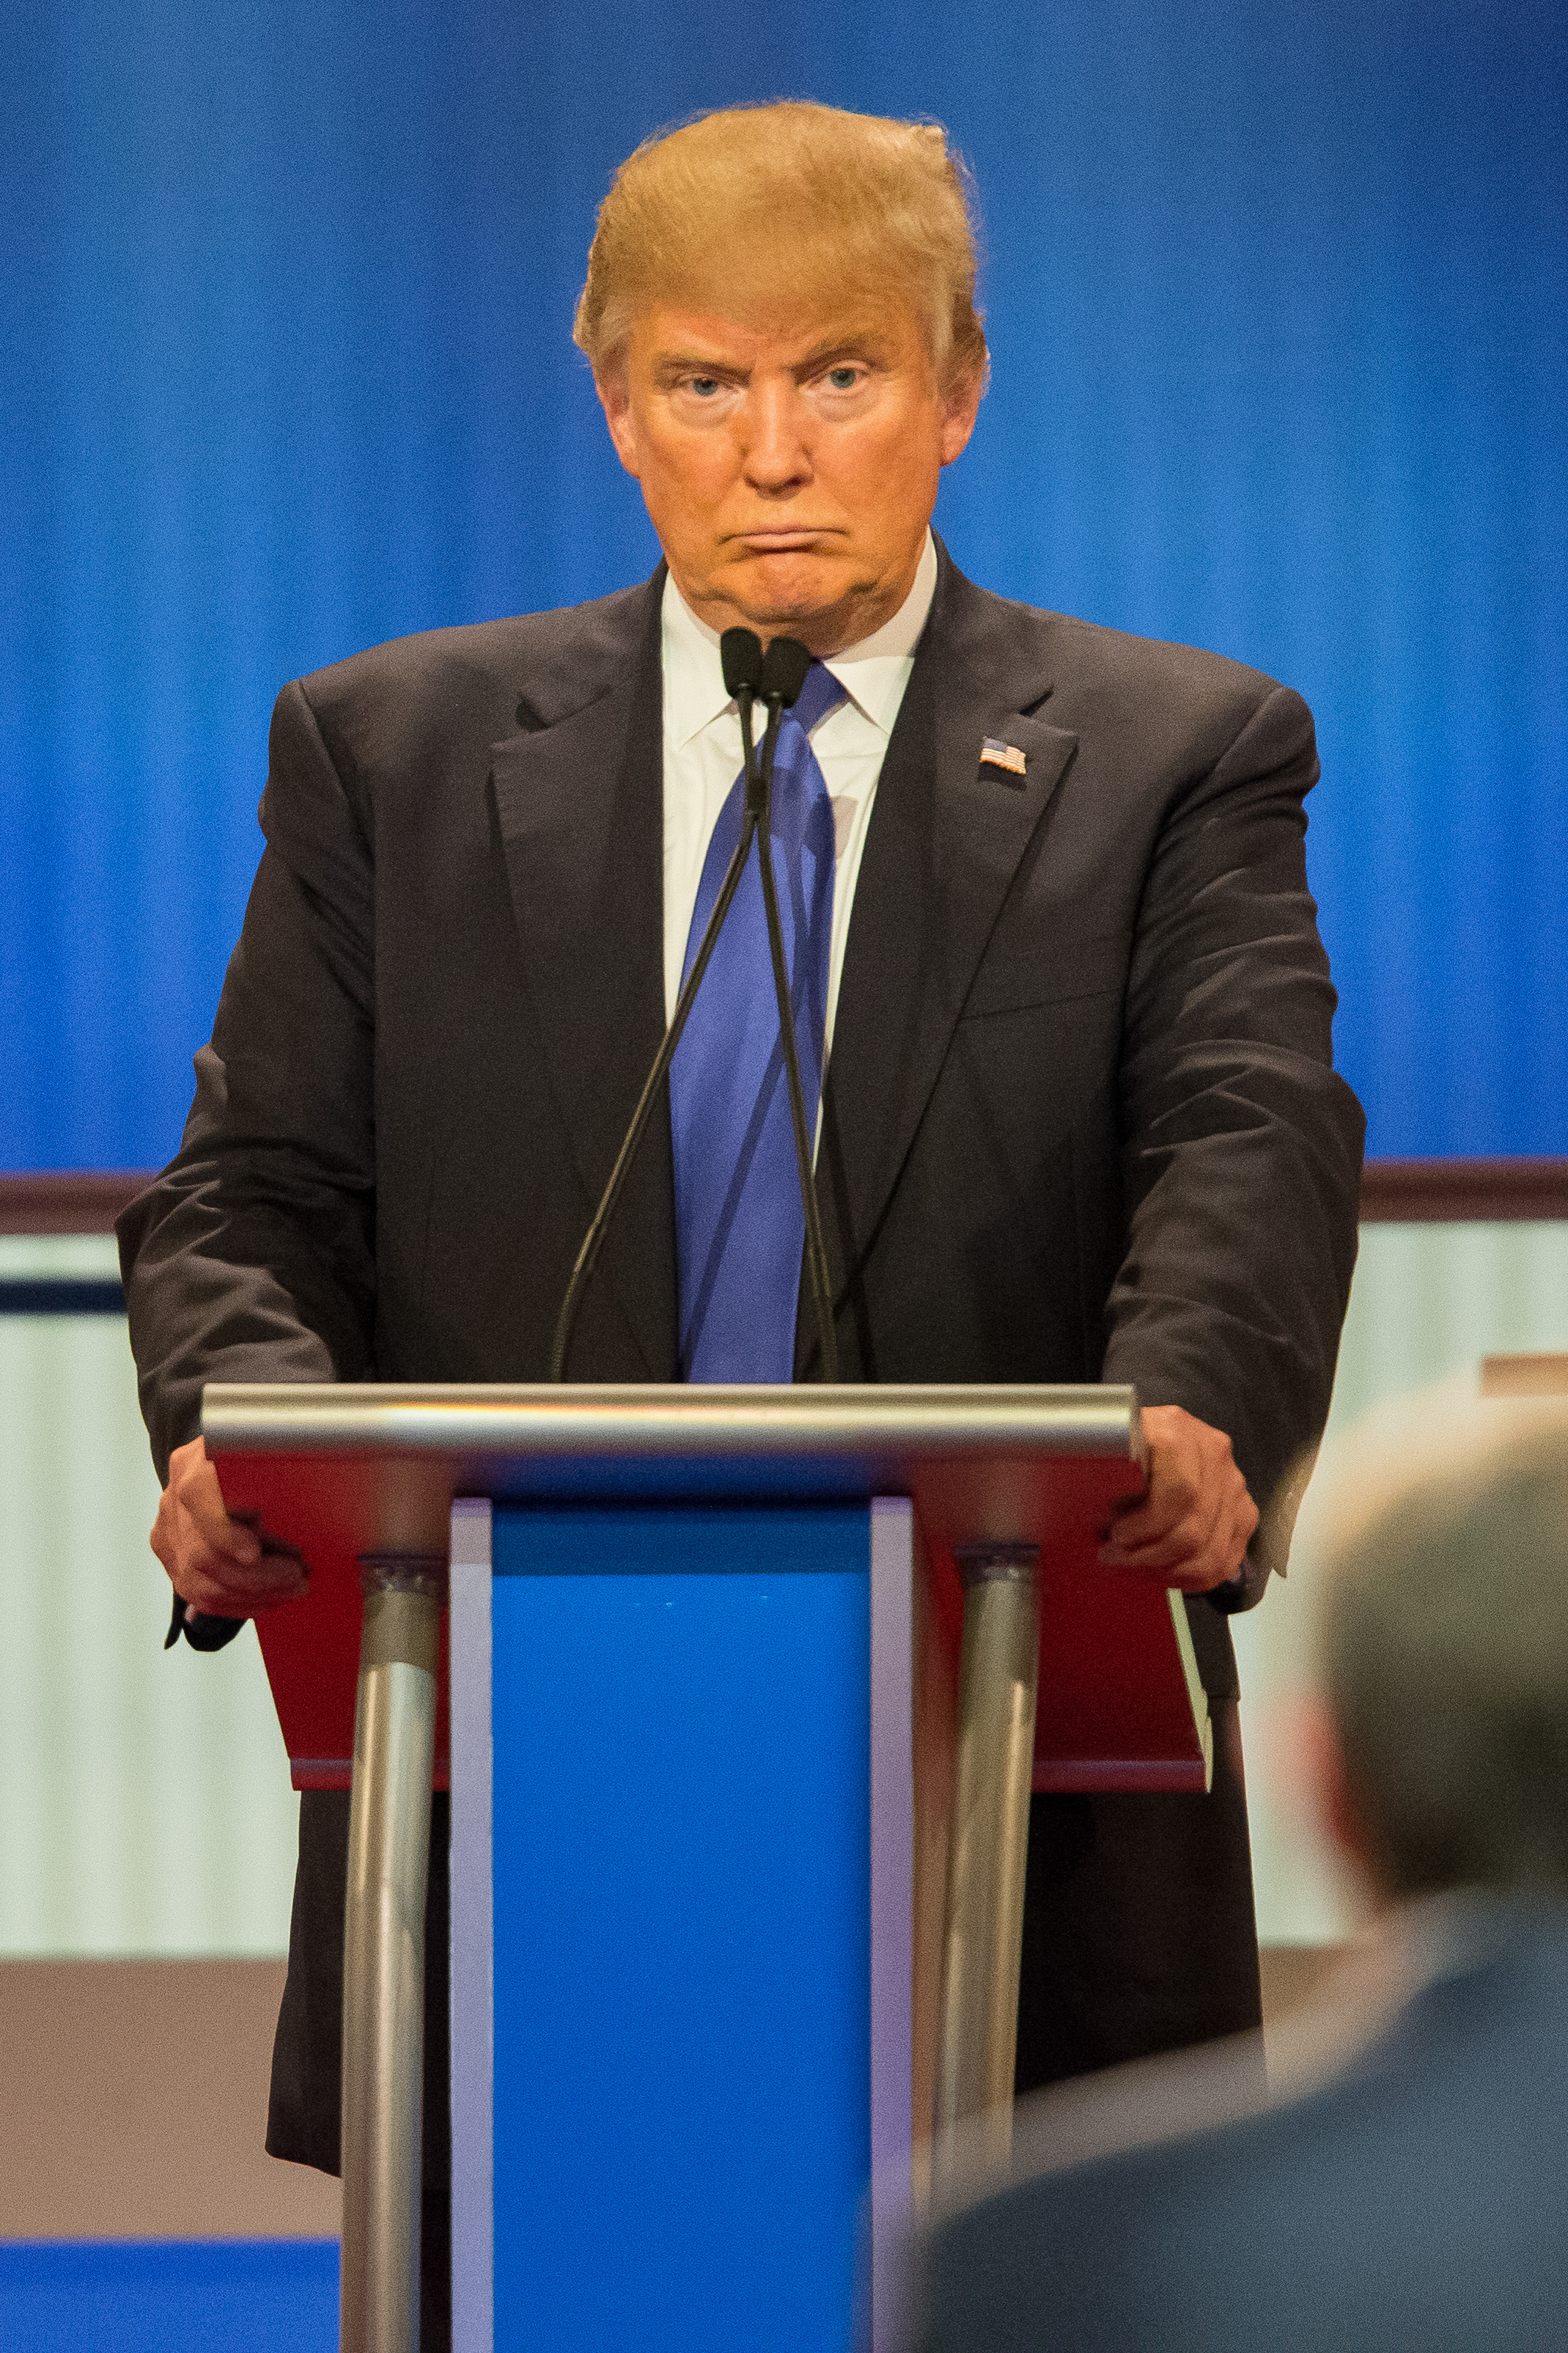 Republican Presidential candidate Donald Trump reacts to a question during the Republican Presidential Debate in Detroit, Michigan, March 3, 2016.